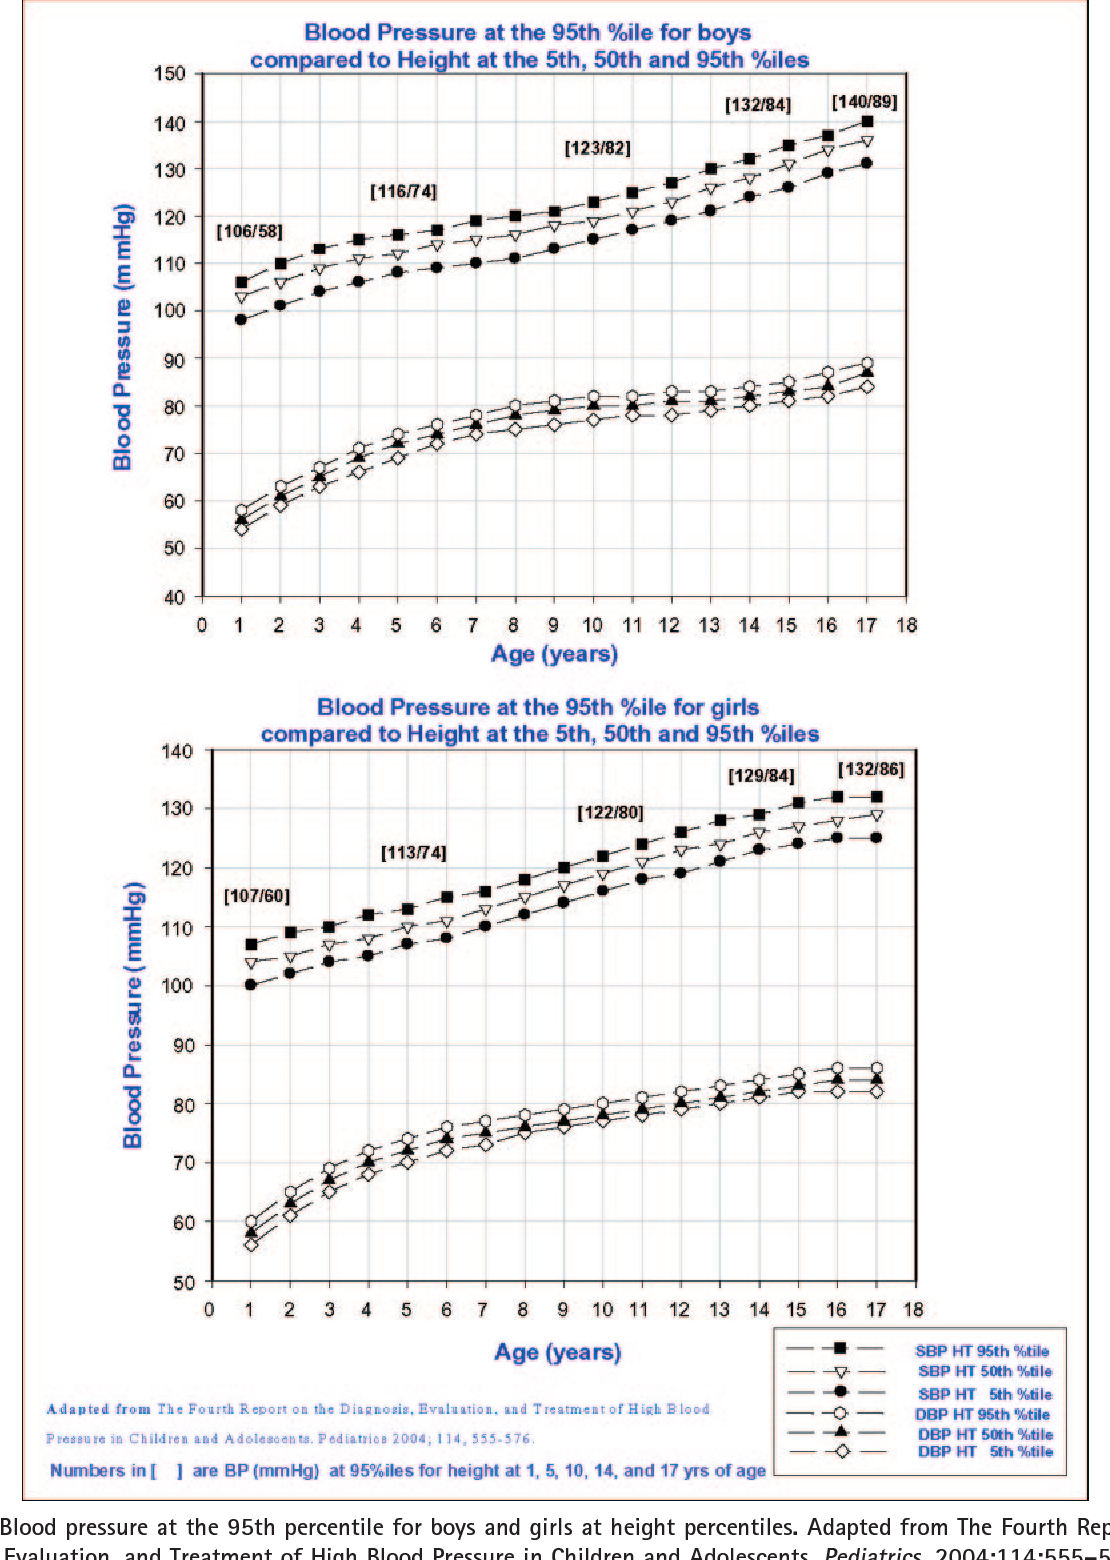 Blood pressure at the 95th percentile for boys and girls at height  percentiles